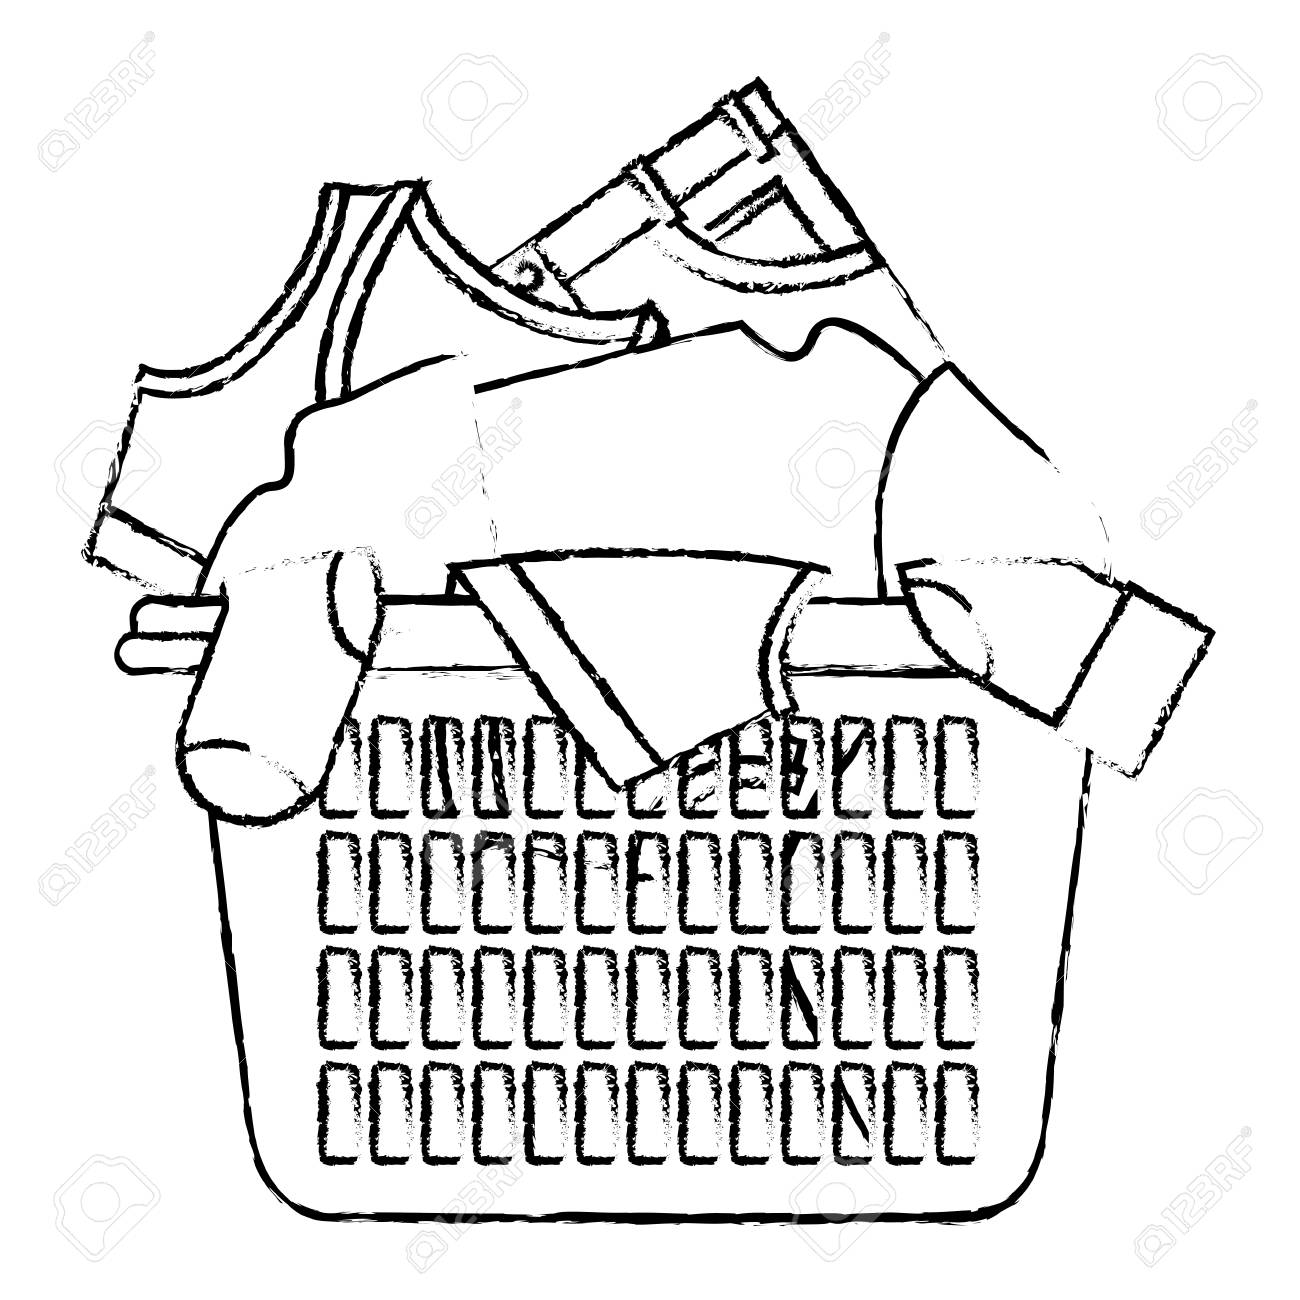 Basket clipart laundry basket. Drawing at getdrawings com